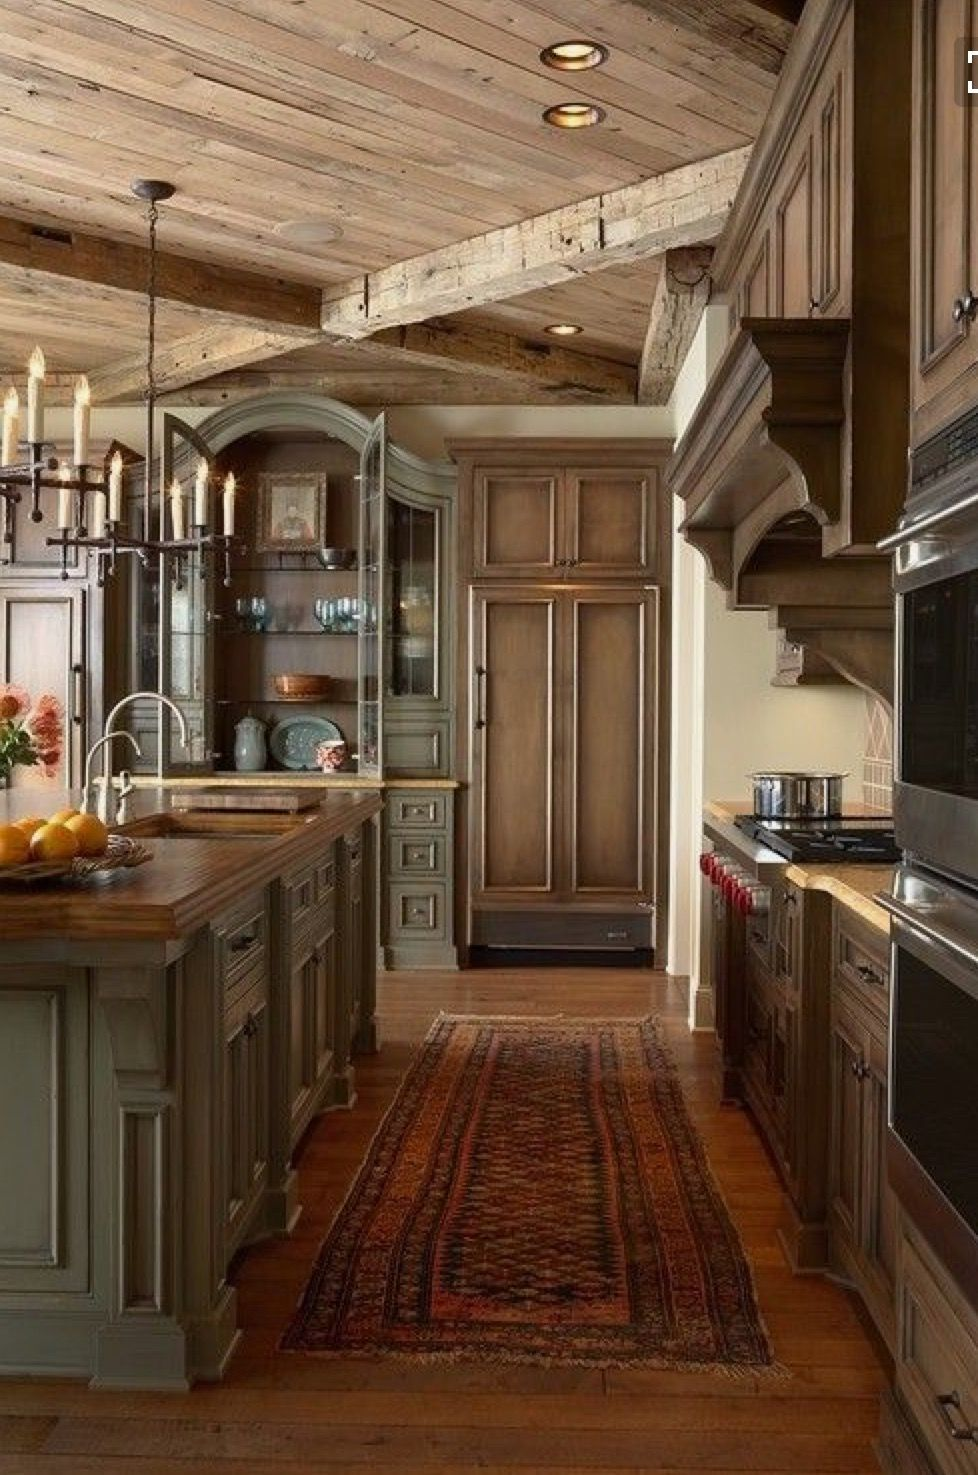 Love The Colors Wood Ceiling Green Cabinets And Cream Colored Walls Rustic Kitchen Design Country Kitchen Designs Rustic House